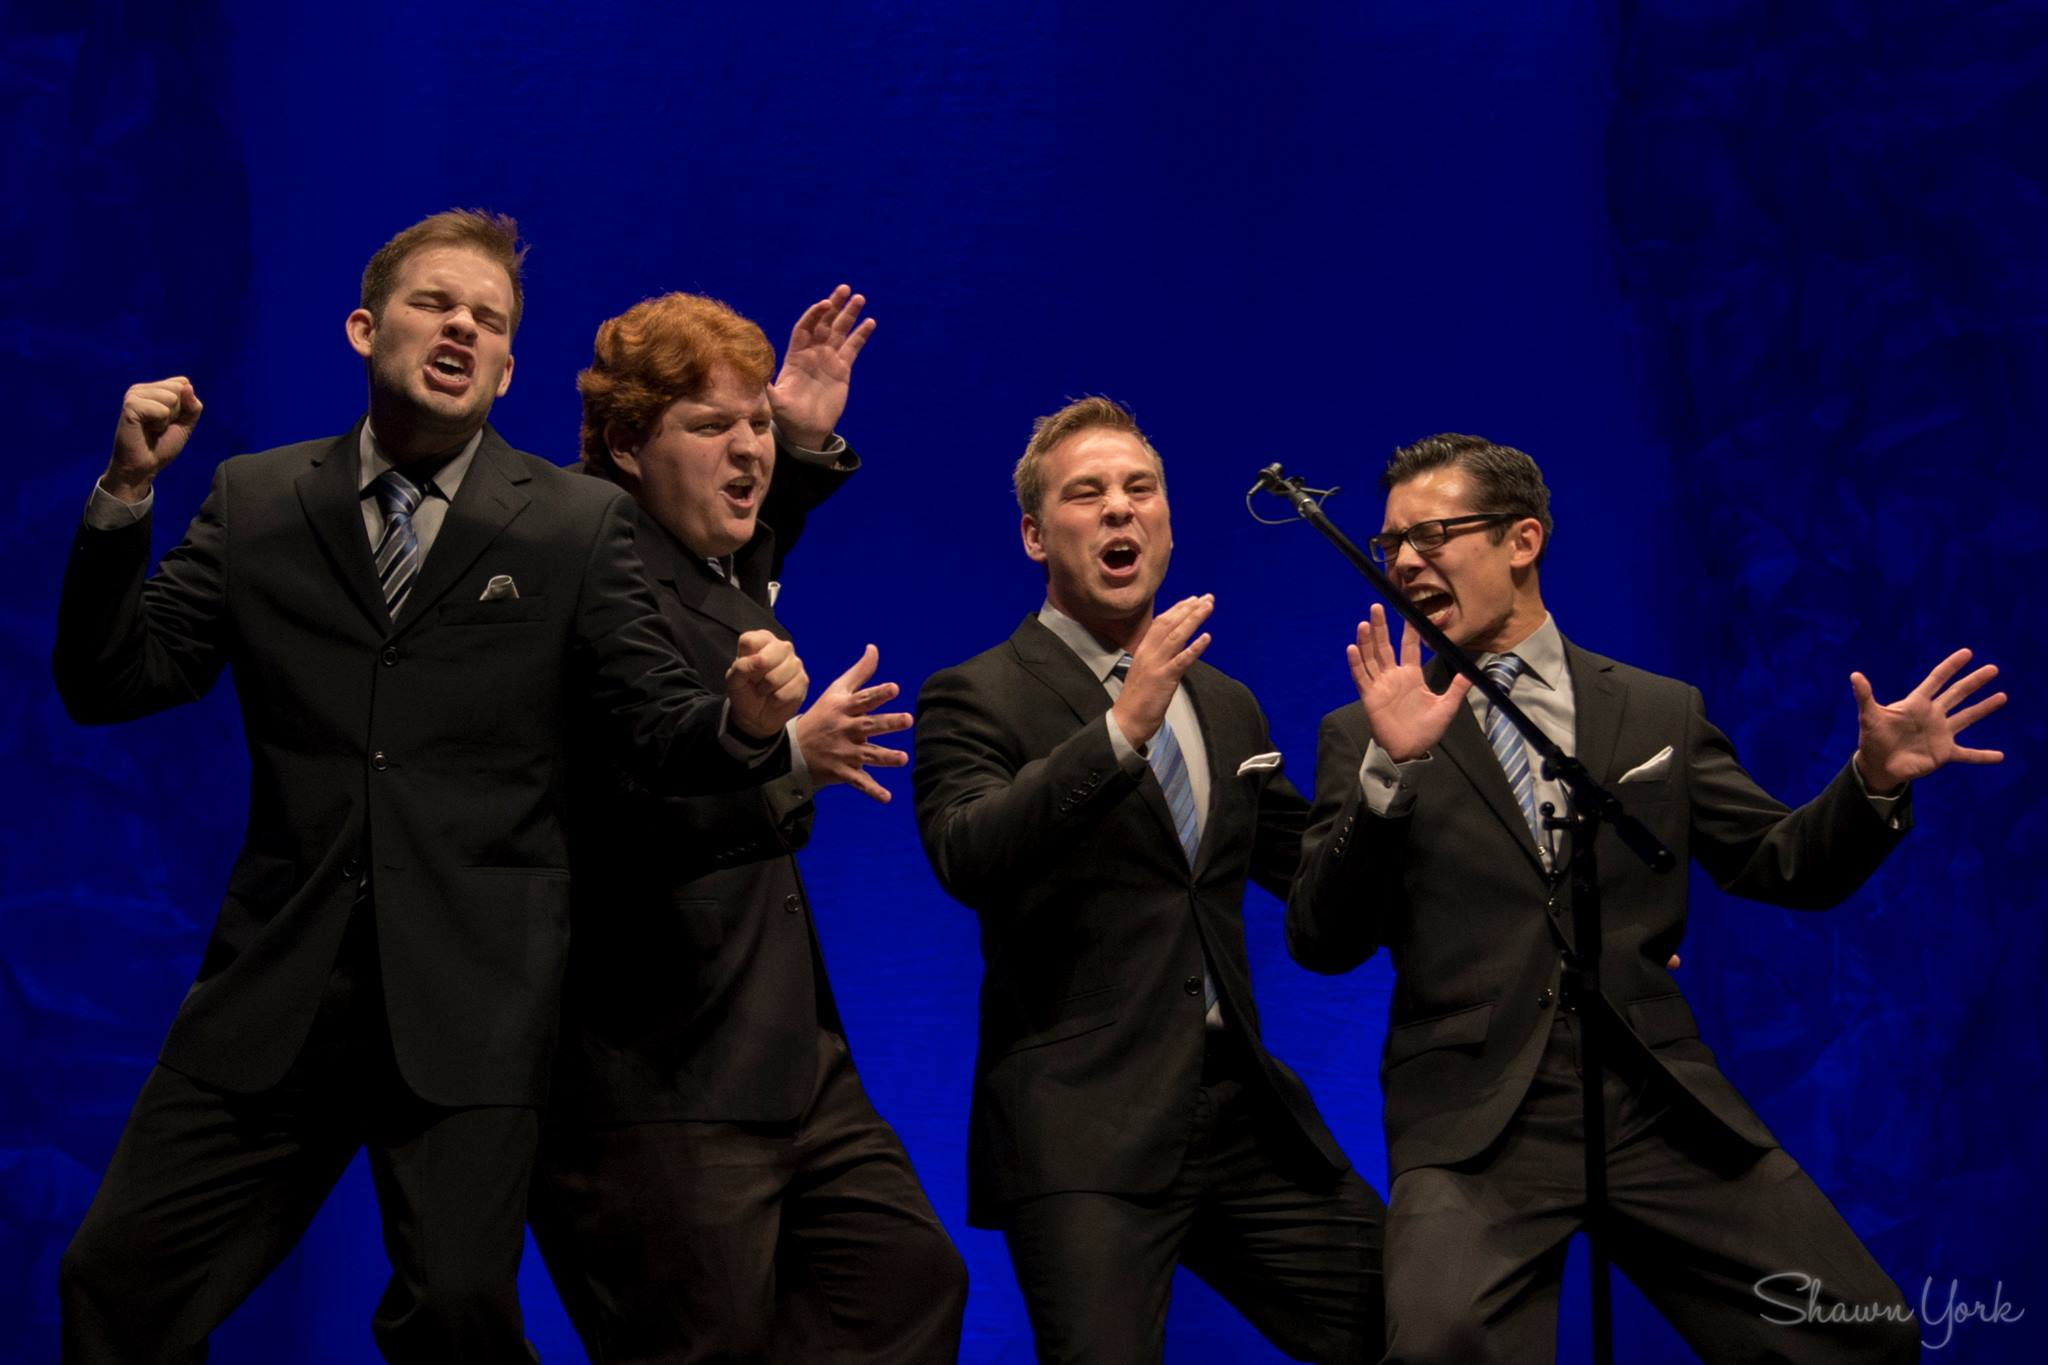 The Newfangled Four NF4 Air Canada Centre Shawn York International Collegiate Barbershop Quartet